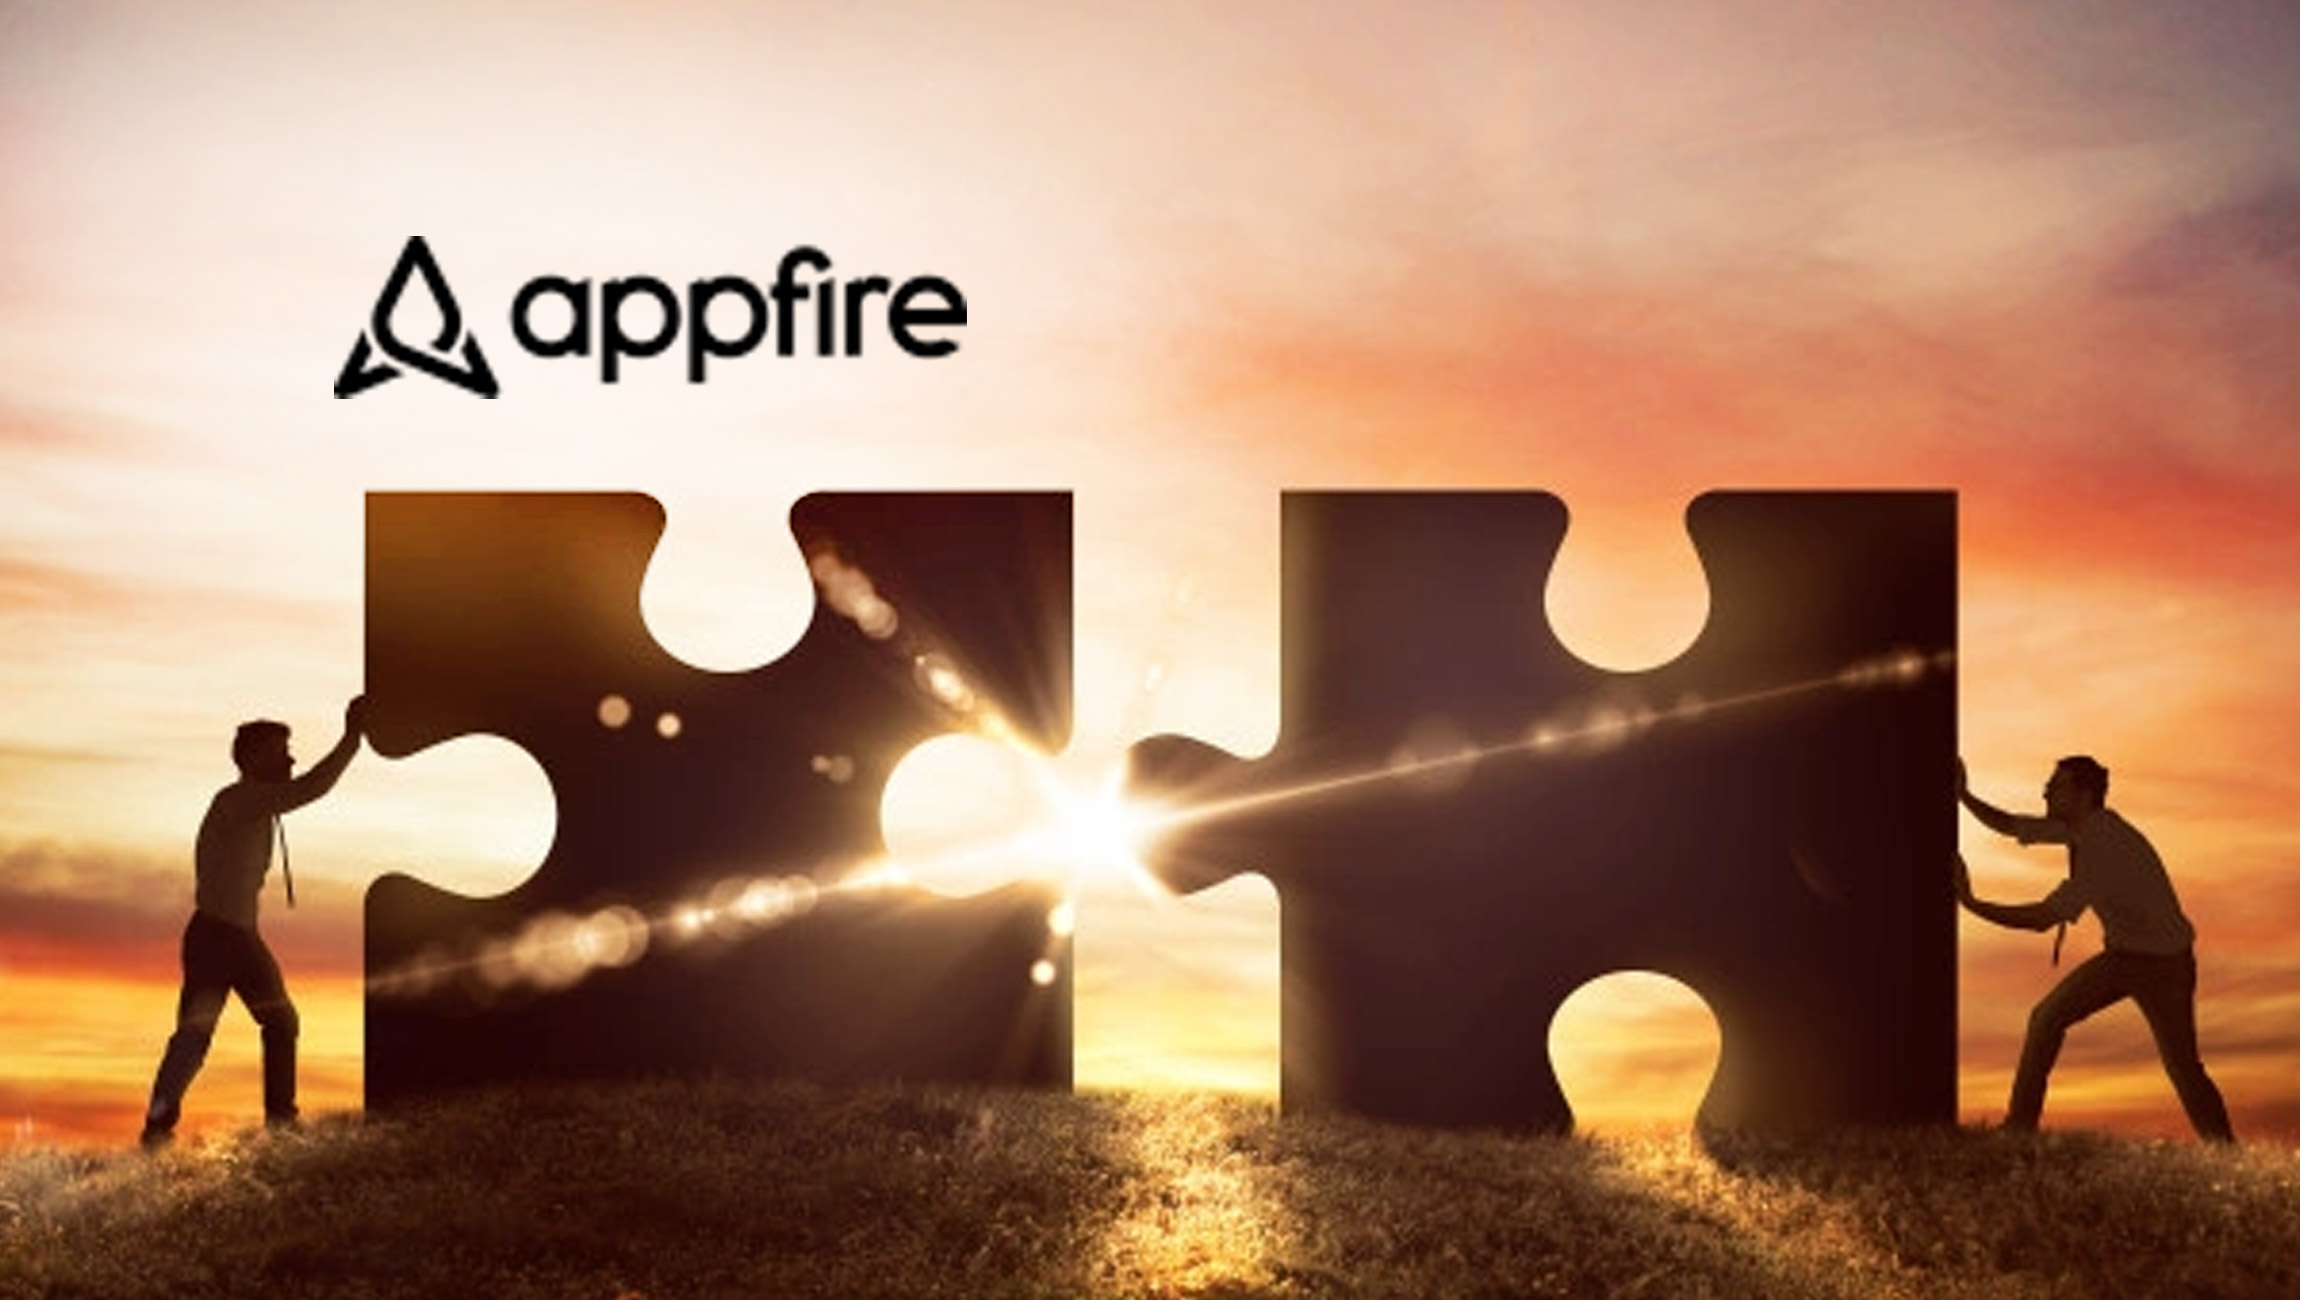 Appfire-Acquires-Spartez-Software_-Combining-Next-Generation-Product-Offerings-Across-Visual-Collaboration_-Agile_-IT-Service-Management_-and-DevOps